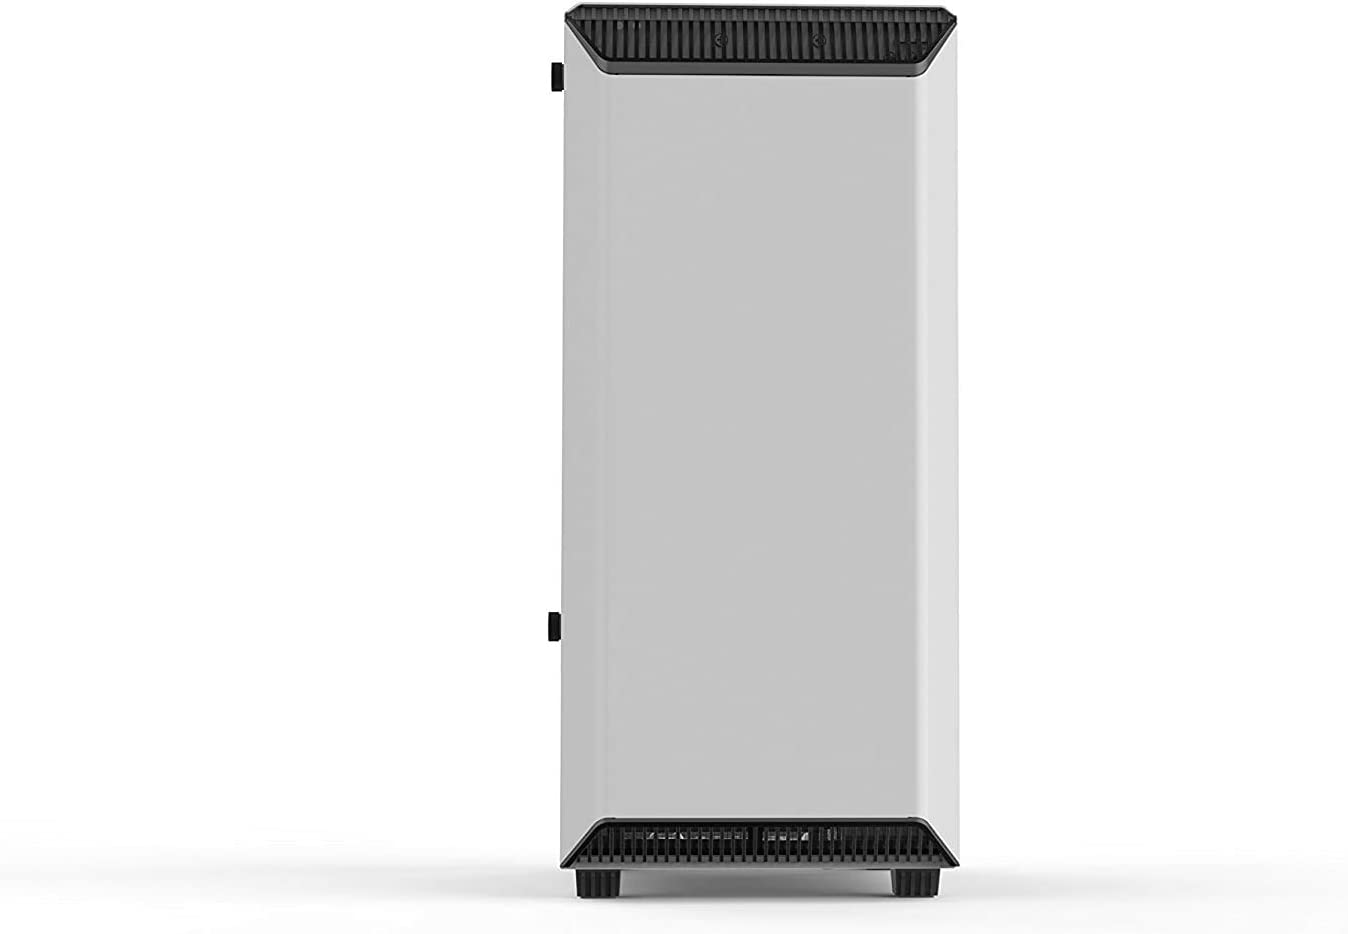 ATX Mid Tower AT-14 Gaming Computer Case, Tempered Glass Side Panel Optimized for High Airflow and Silent Computing with Moduvent Technology - 2X 133mm Silent Fans Included